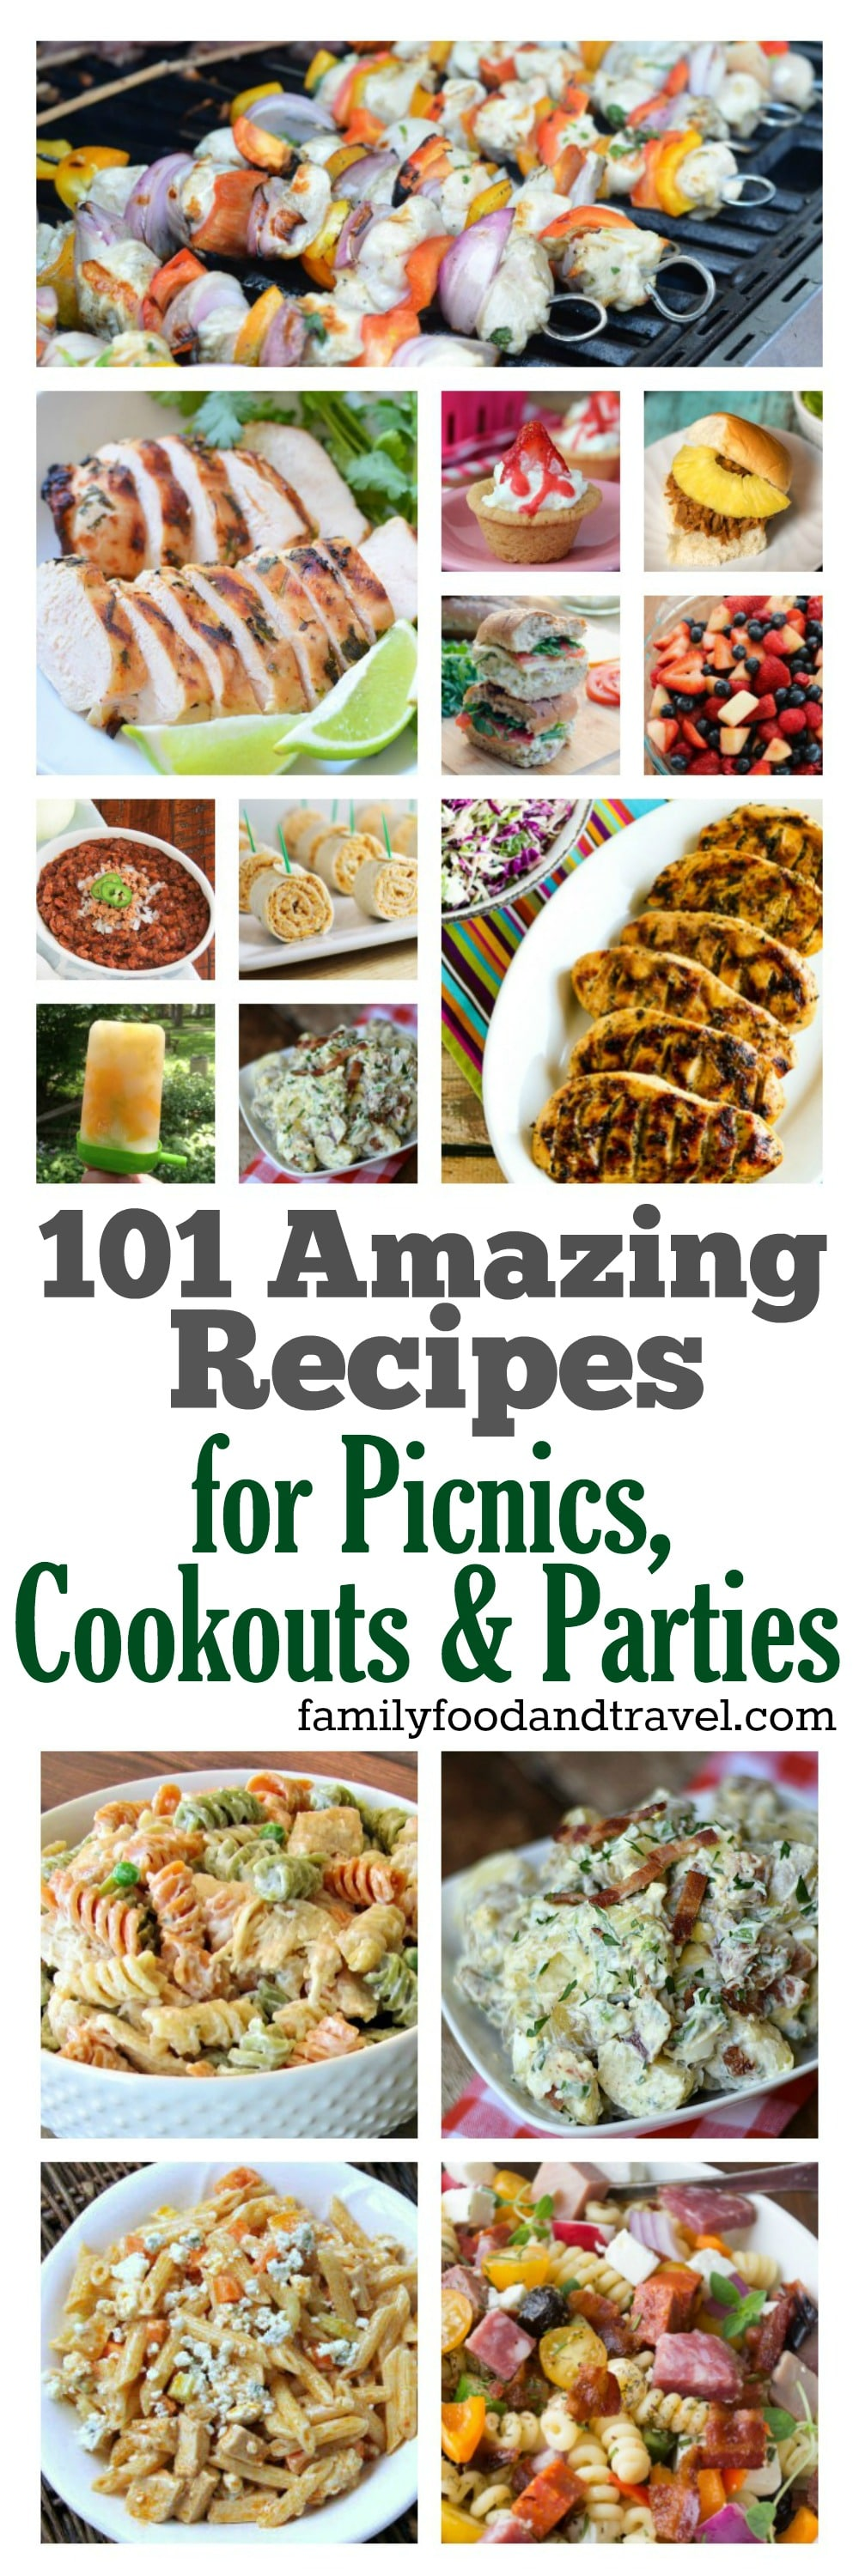 101 Amazing BBQ Recipes for Picnics Cookouts and Parties